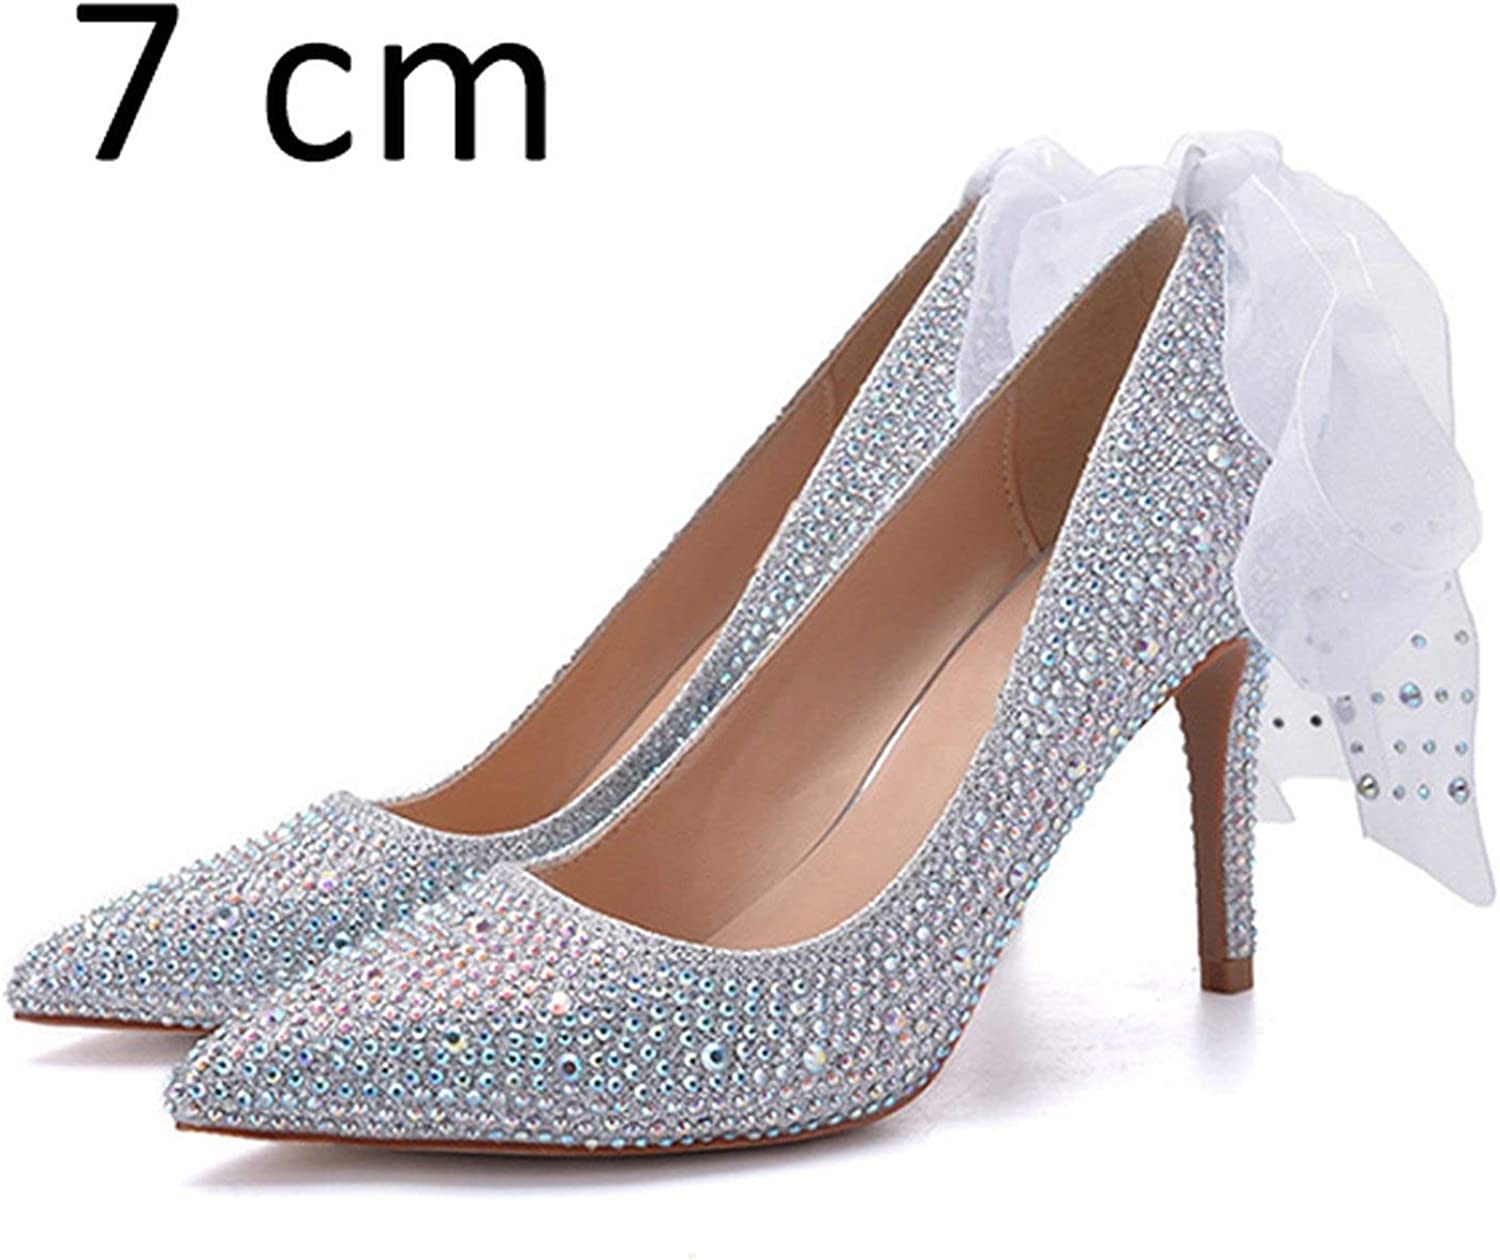 All-About-Us Women Wedding shoes High Heels Luxury Design Women Pumps Rhinestone Pointed Toe Spring Summer Brand Cinderella shoes Party DE